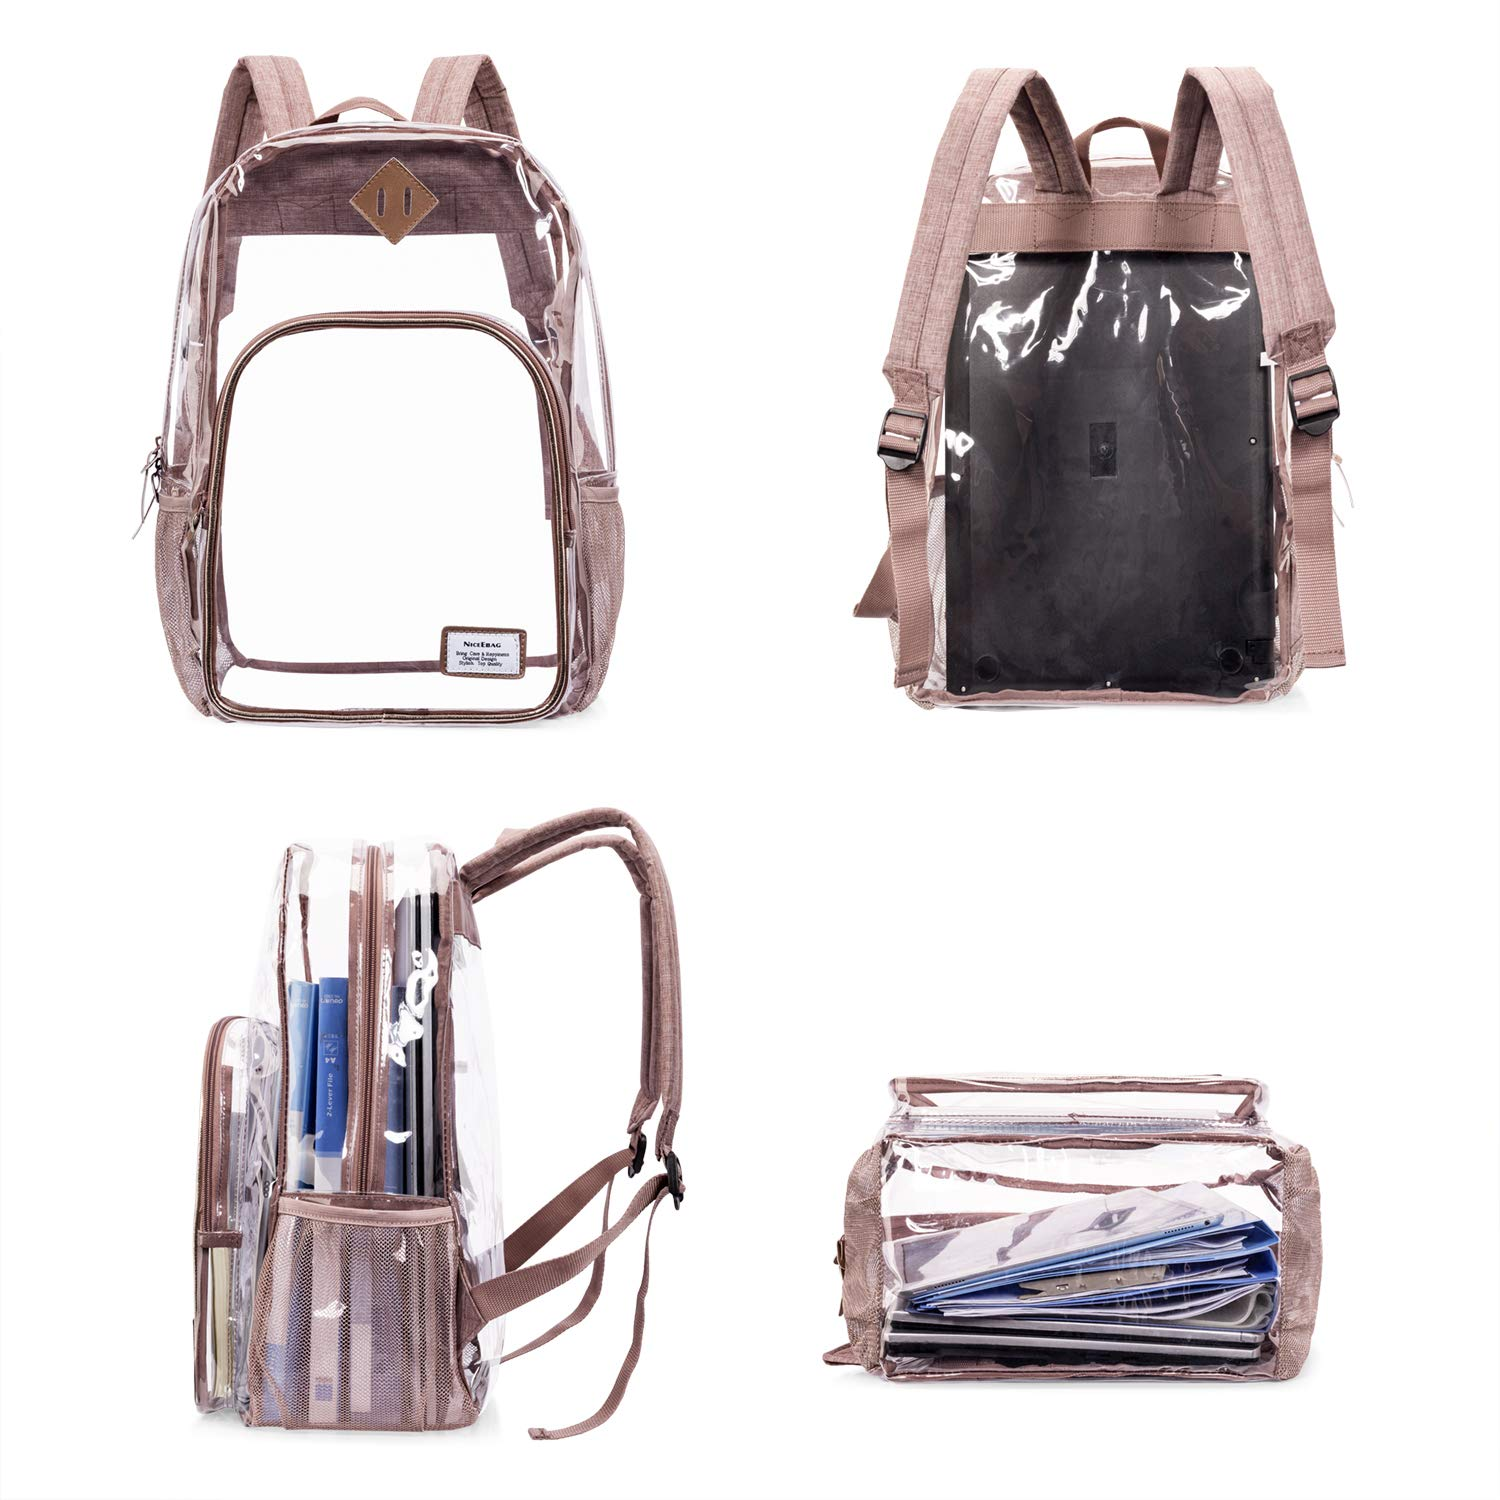 35e95818e925 NiceEbag Clear School Backpack Heavy Duty Clear Bookbag Large See Through  Backpack for Teen Girls Boys Kids Student Women and Men Stadium Approved ...